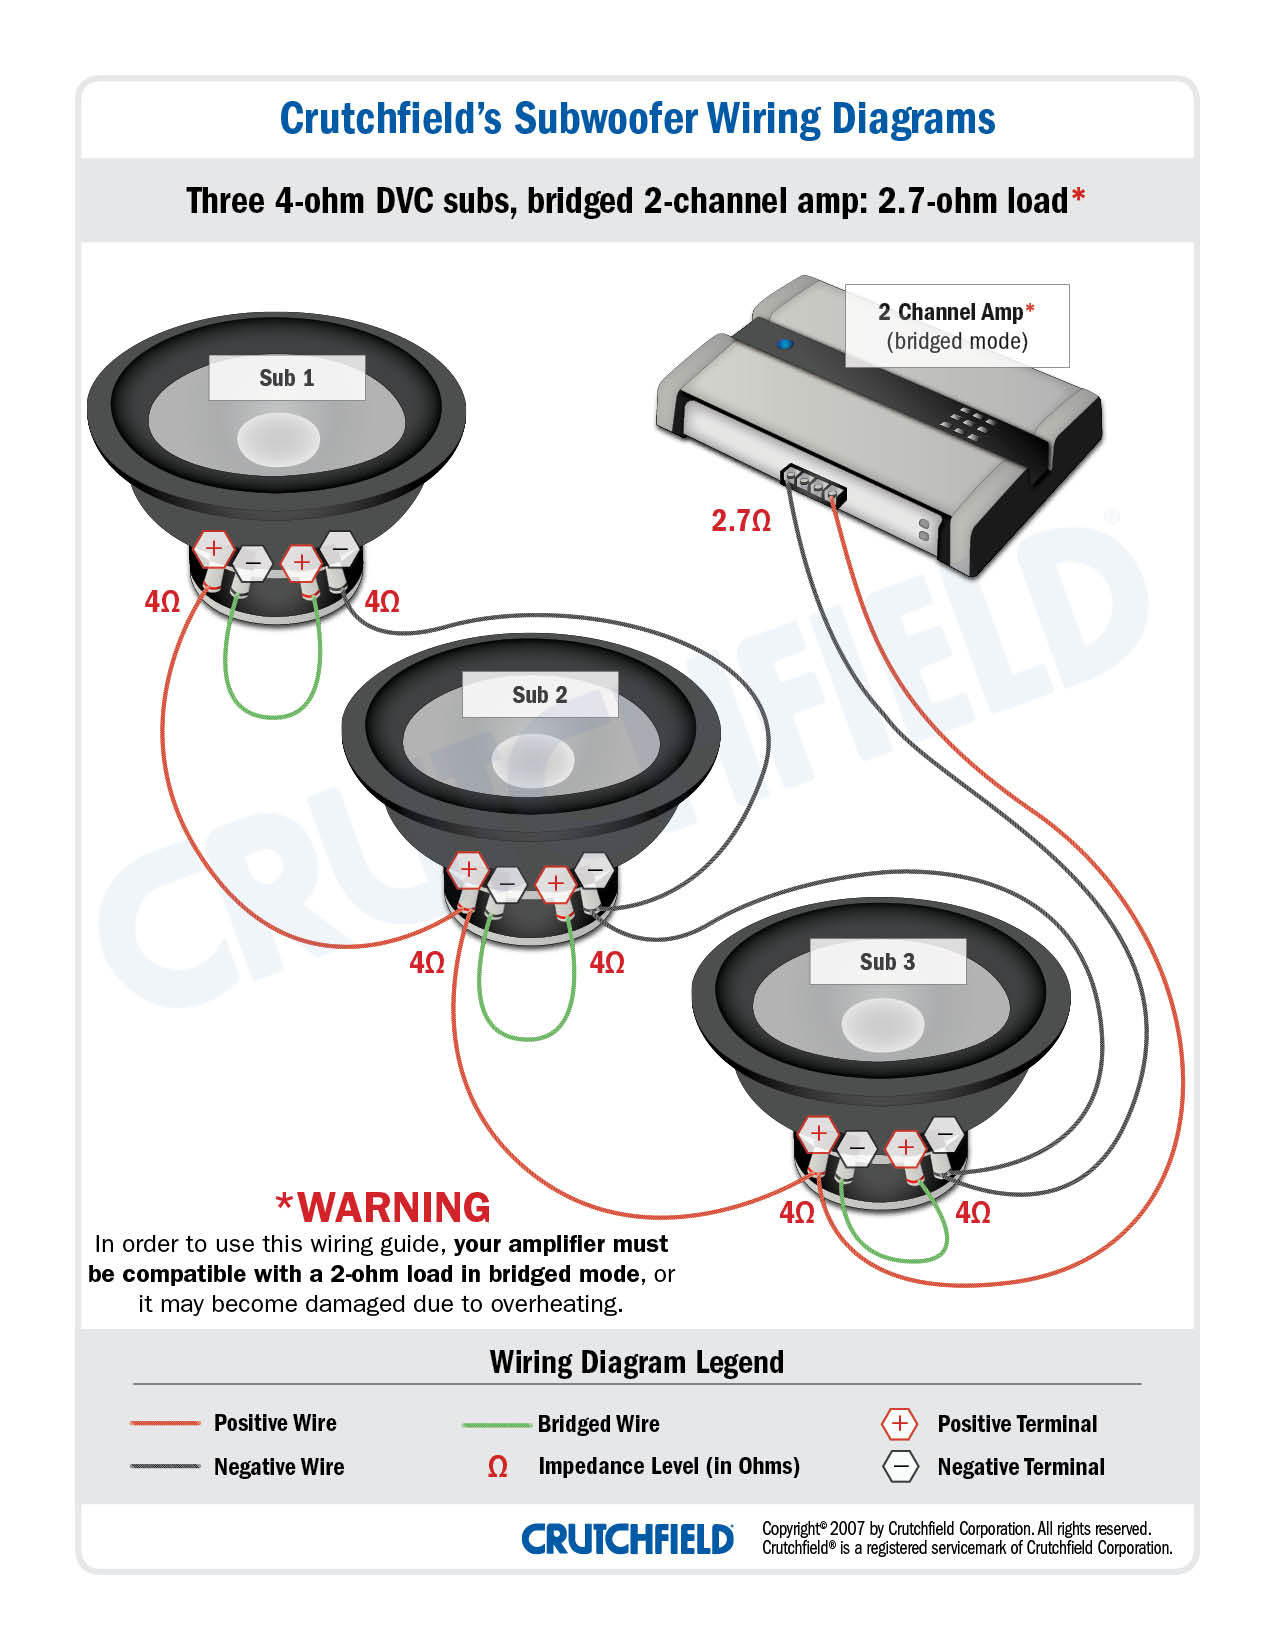 dual audio amp wiring diagram dual wiring diagrams 3 dvc 4 ohm 2 ch low imp dual audio amp wiring diagram